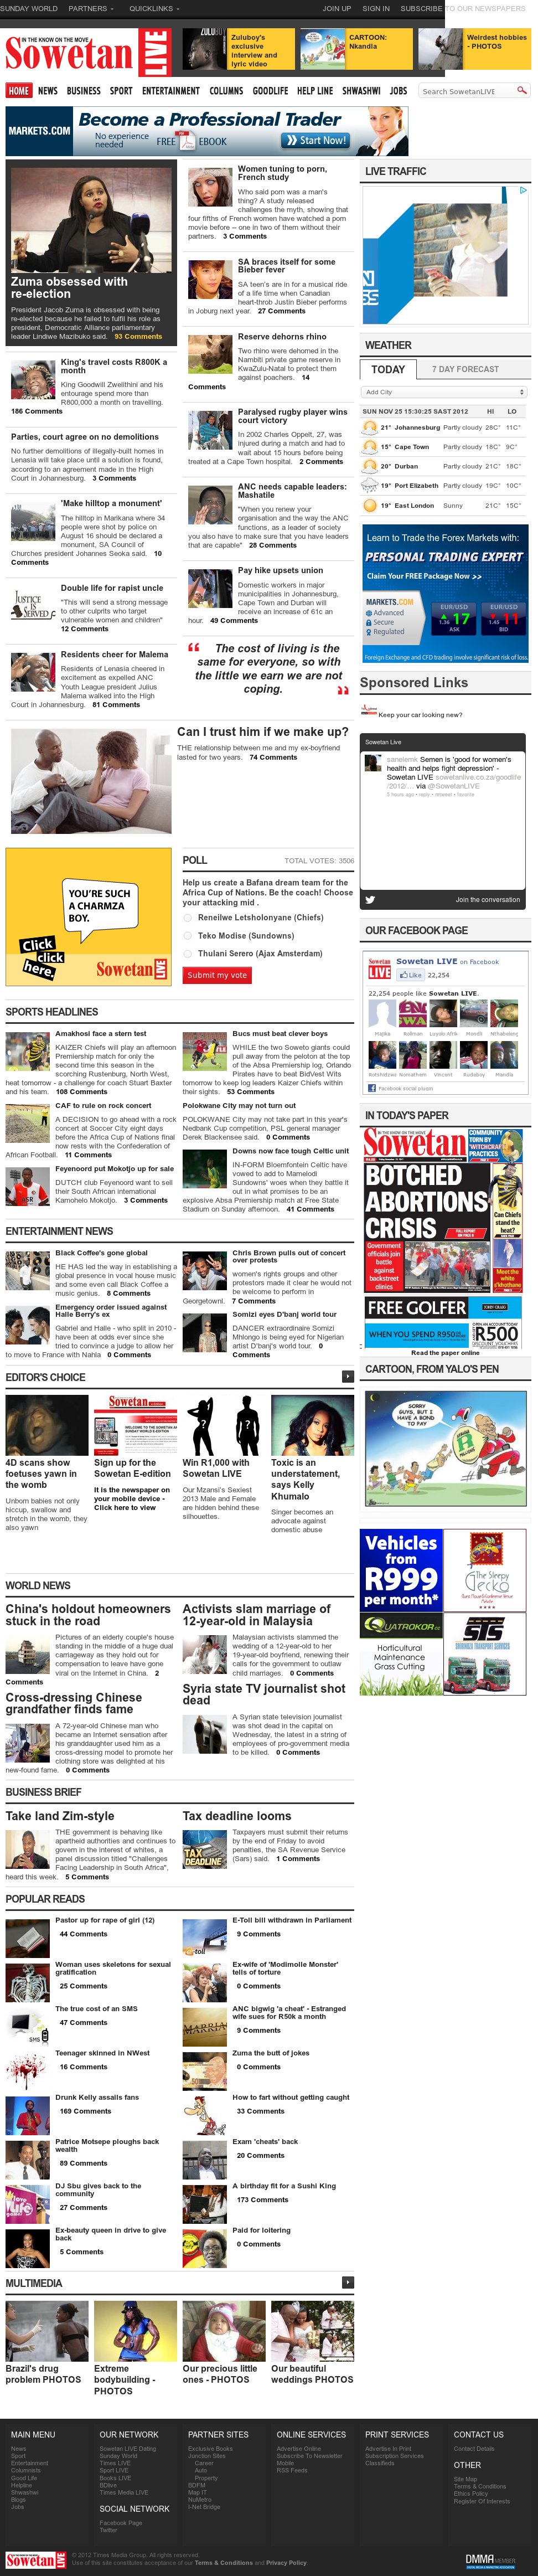 Sowetan Live at Sunday Nov. 25, 2012, 2:28 p.m. UTC